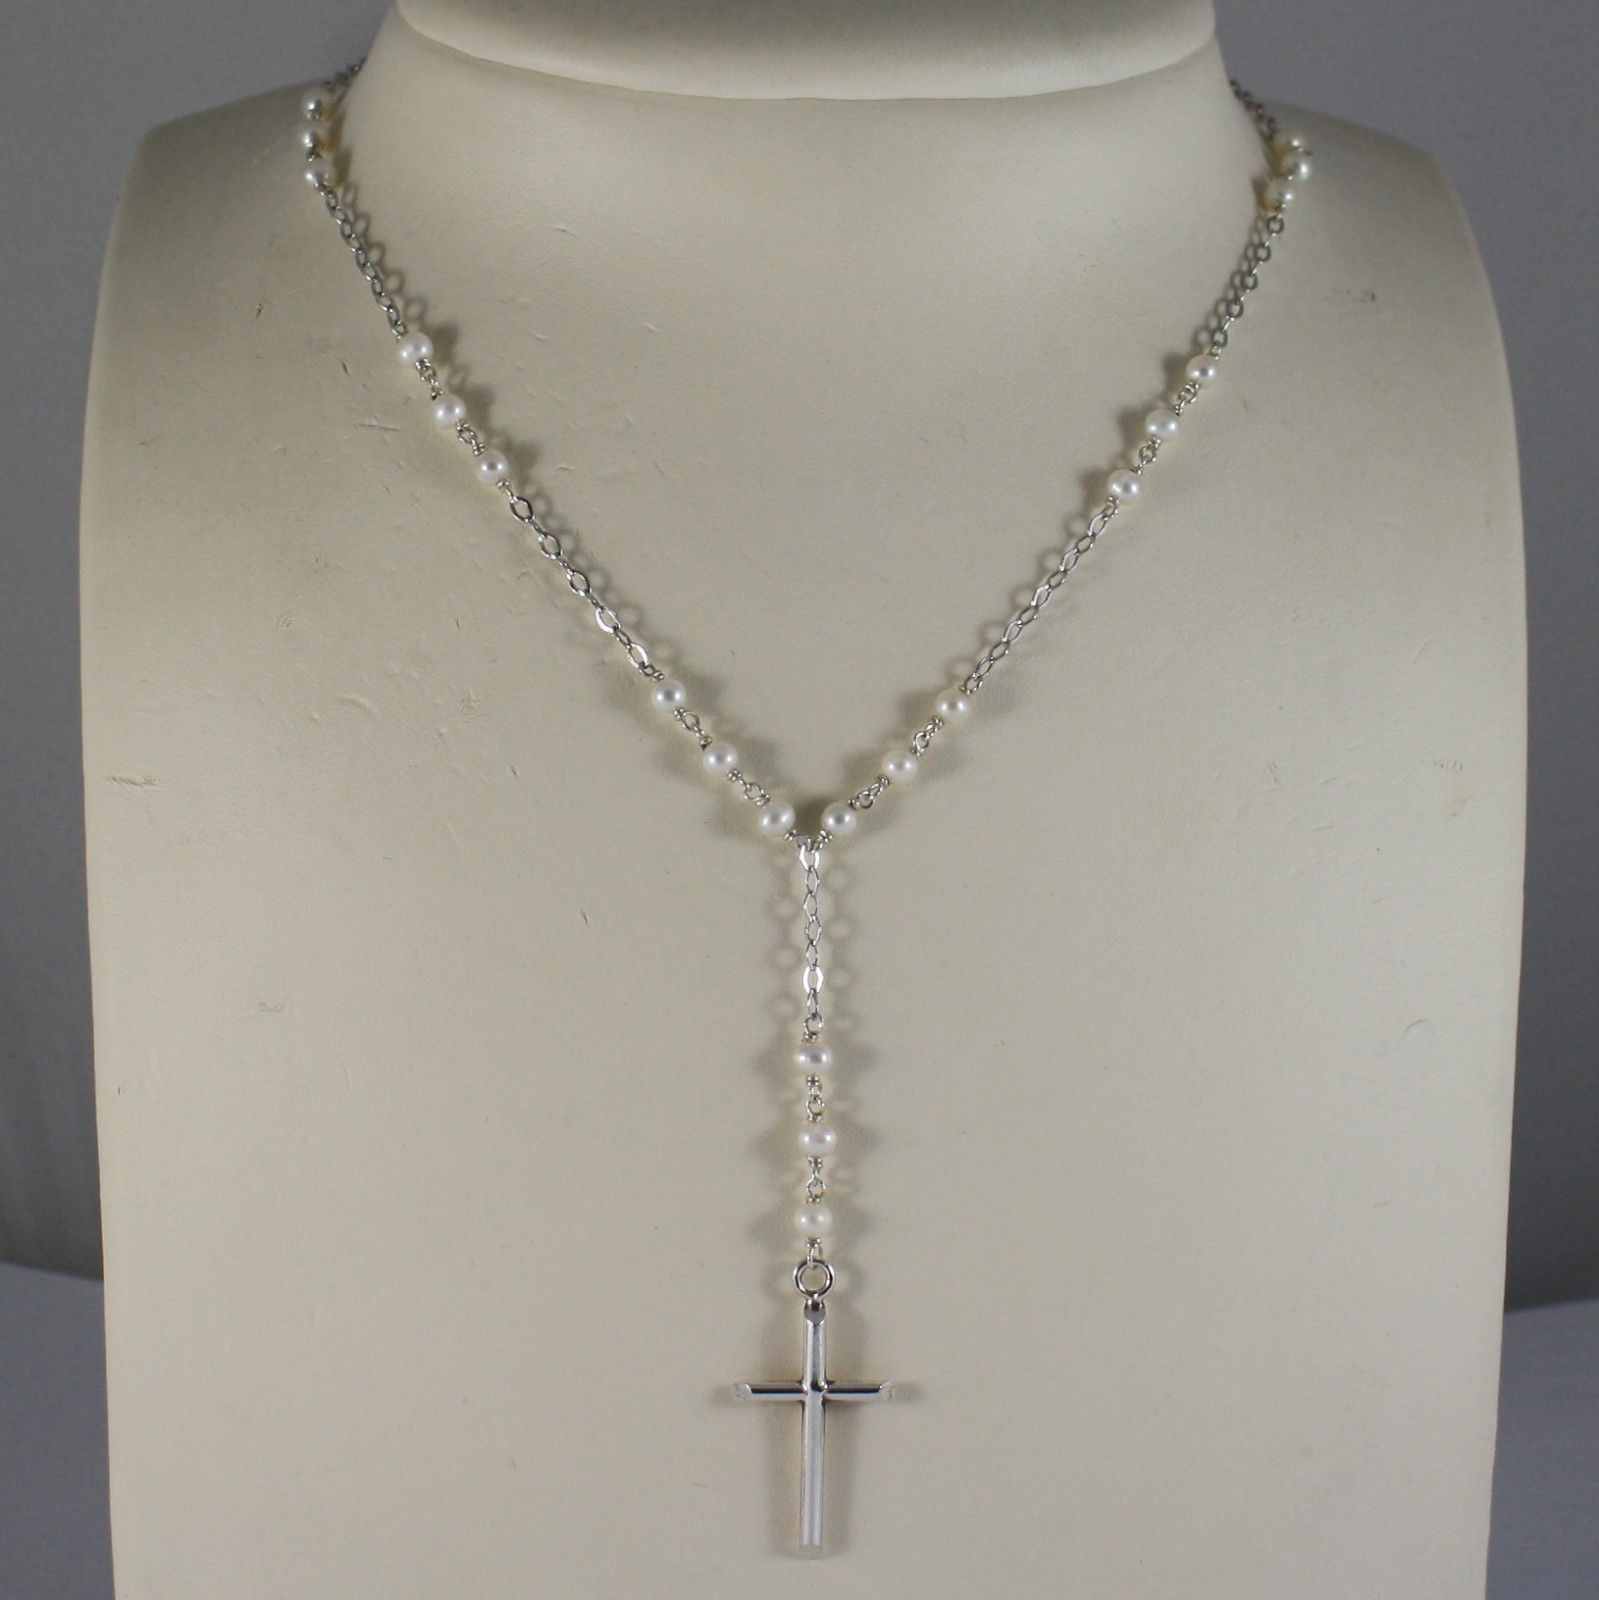 .925 RHODIUM NECKLACE WITH SMALL WHITE PEARLS AND CROSS